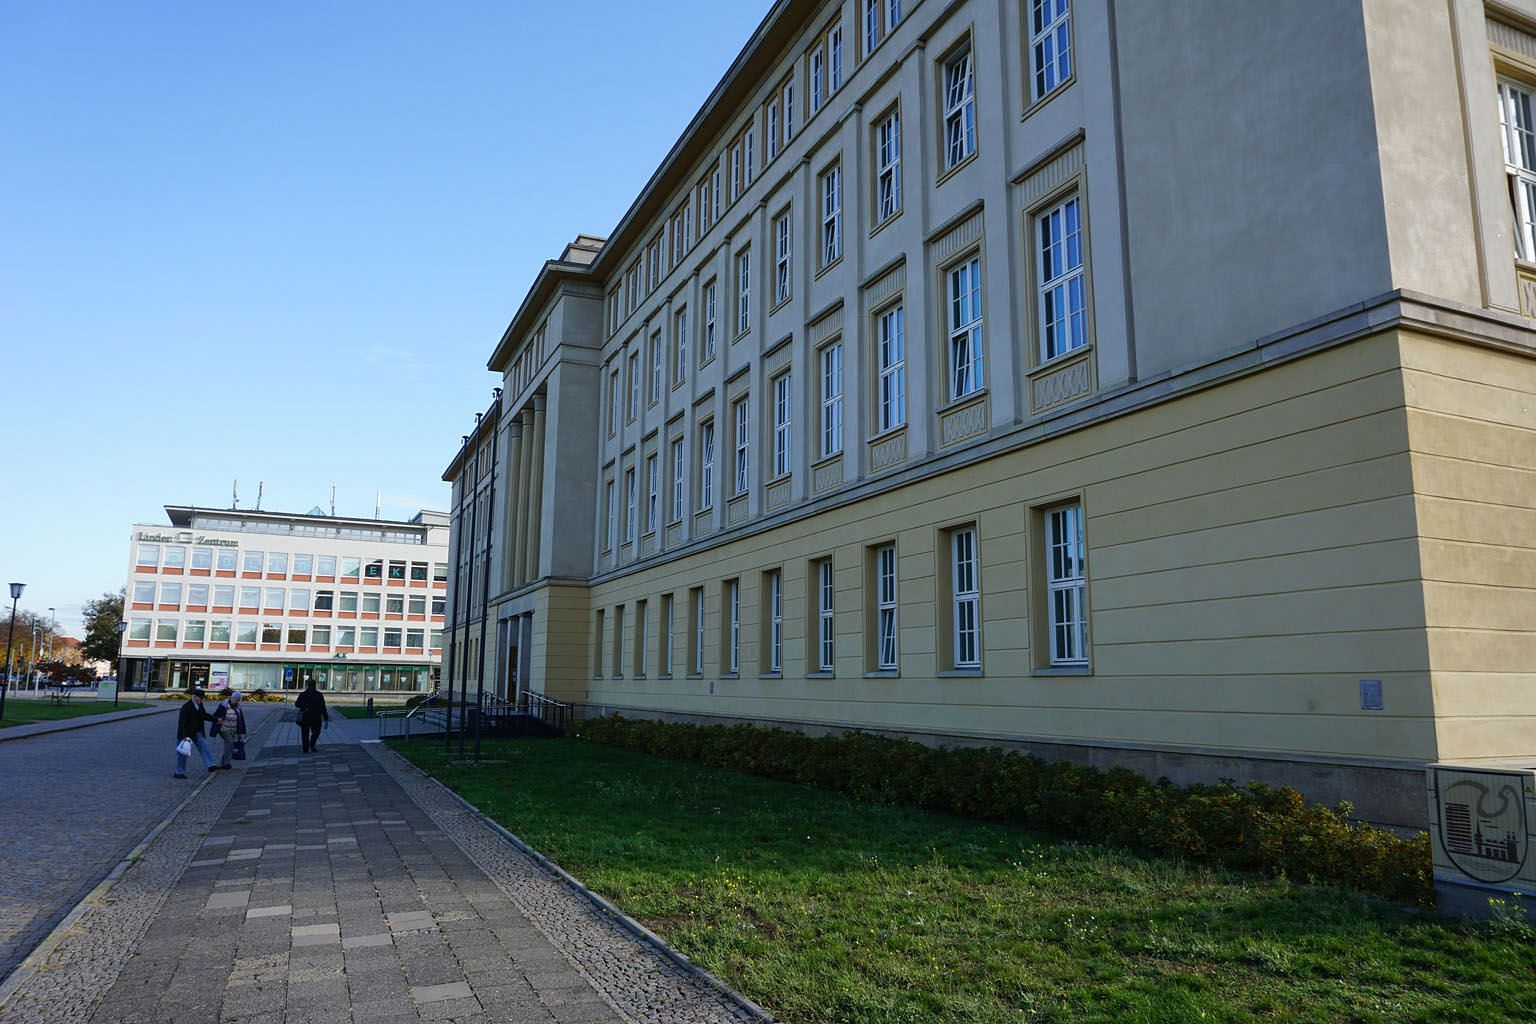 Thirty years after the unification of East and West Germany, the City Hall of Eisenhuttenstadt - a town 100km east of Berlin - stands as a reminder of an East Germany that once basked in a glorious socialist past. Eisenhuttenstadt's population has halved